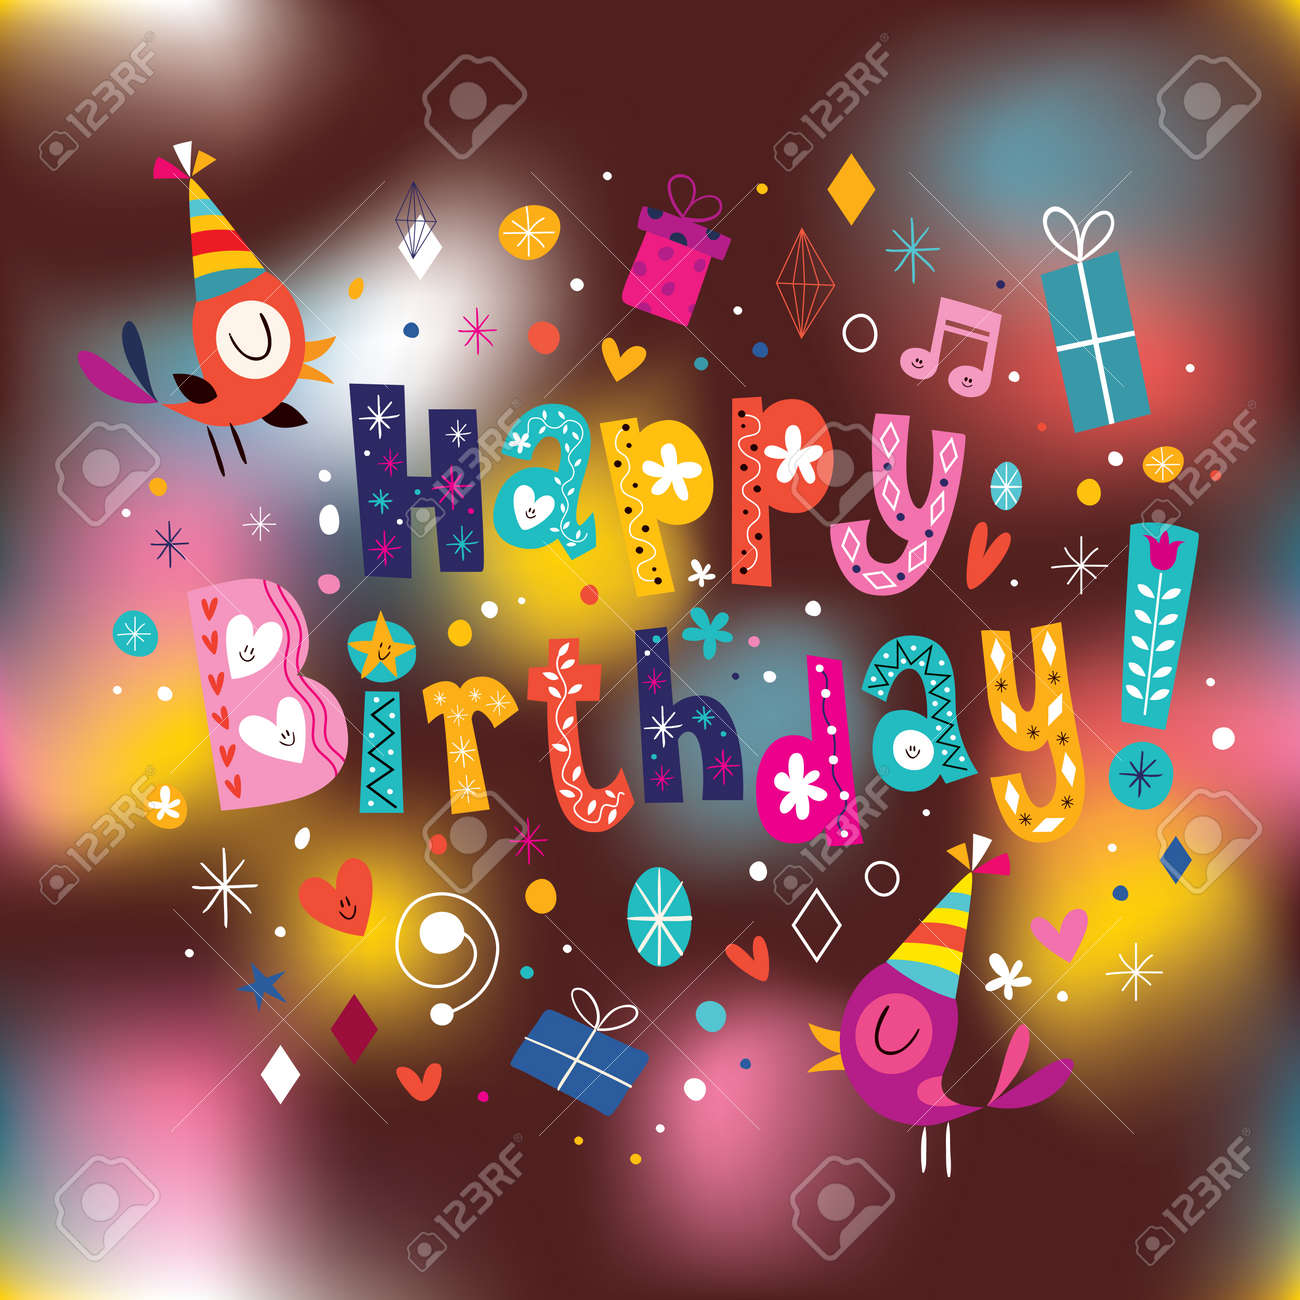 Happy Birthday Card Royalty Free Cliparts Vectors And – Happy Birthday Cards